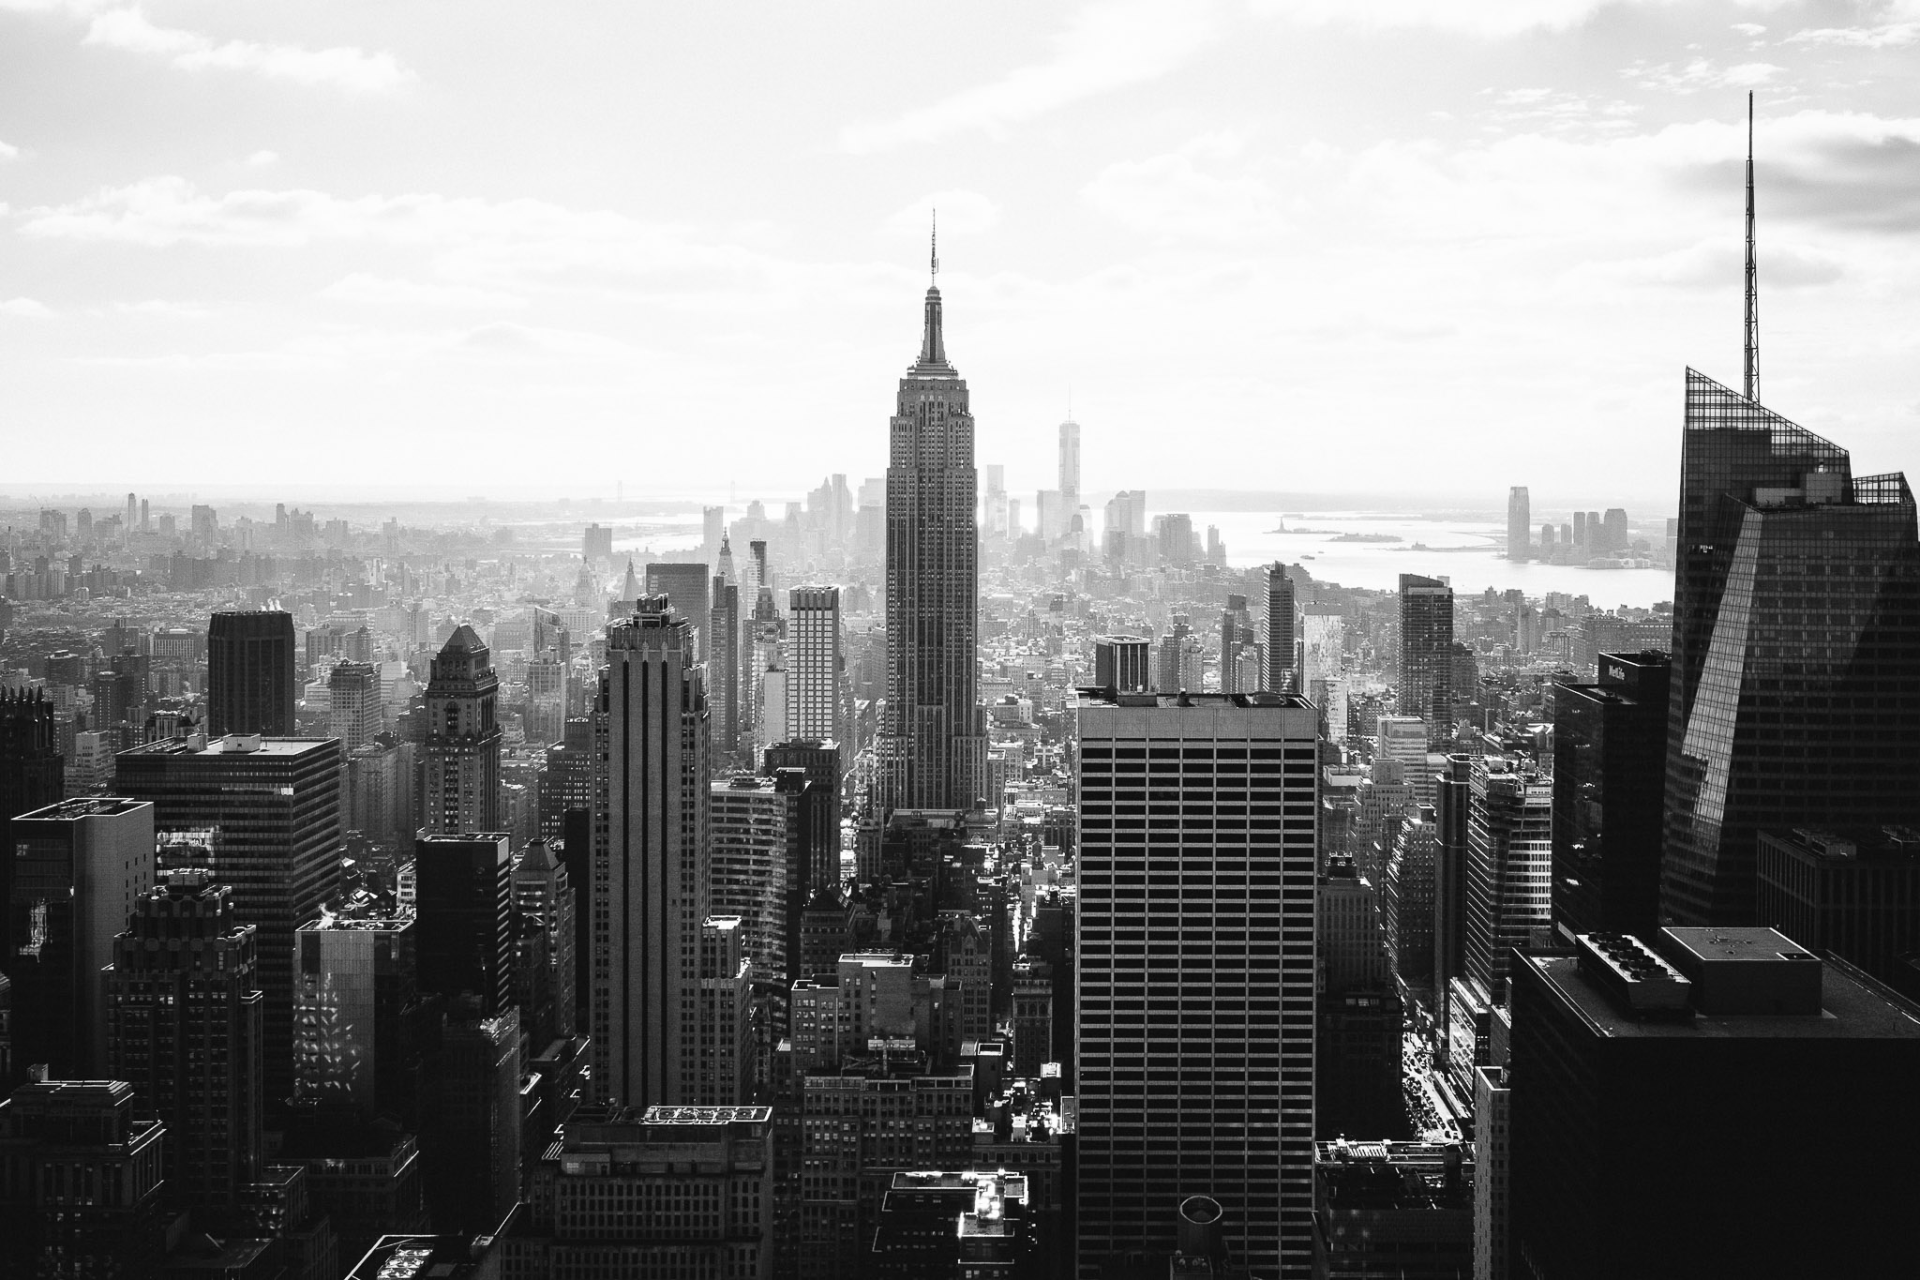 The empire state building seen from the observation deck at the top of the rock at the rockefeller centre in New York City. Taken with a FujiFilm X-Pro1 and a 23mm lens